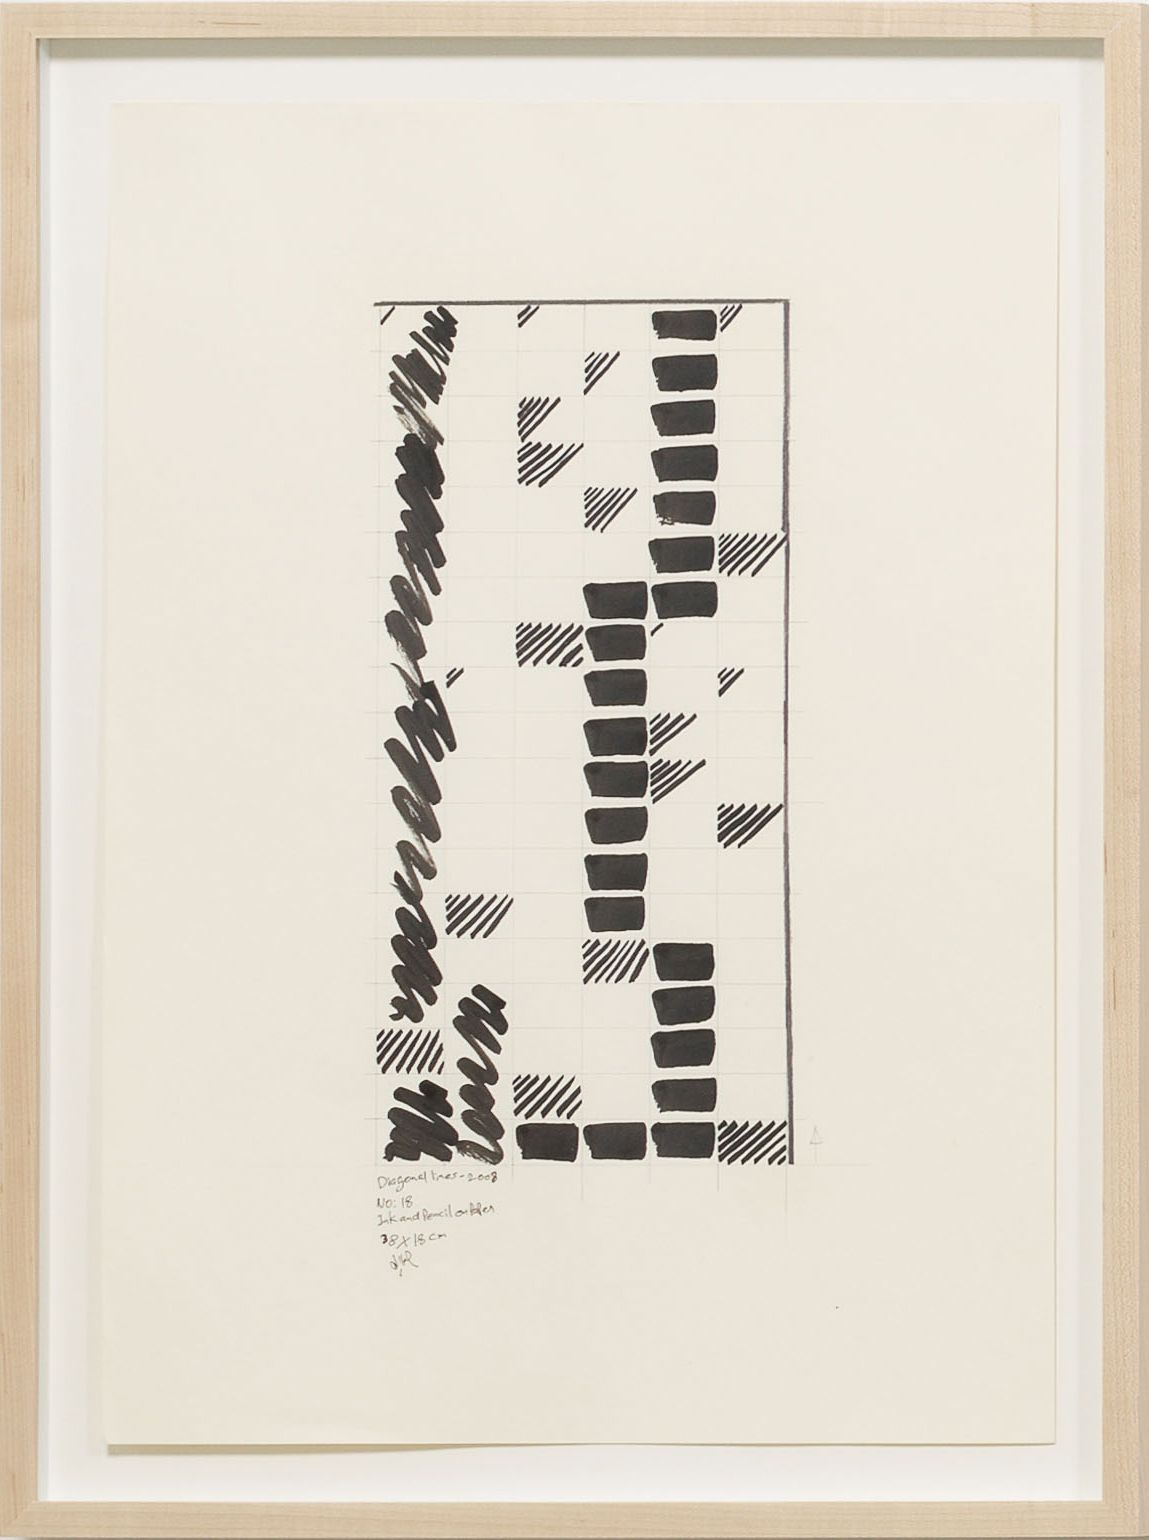 Diagonal Line No. 18, 2008, Ink and pencil on paper